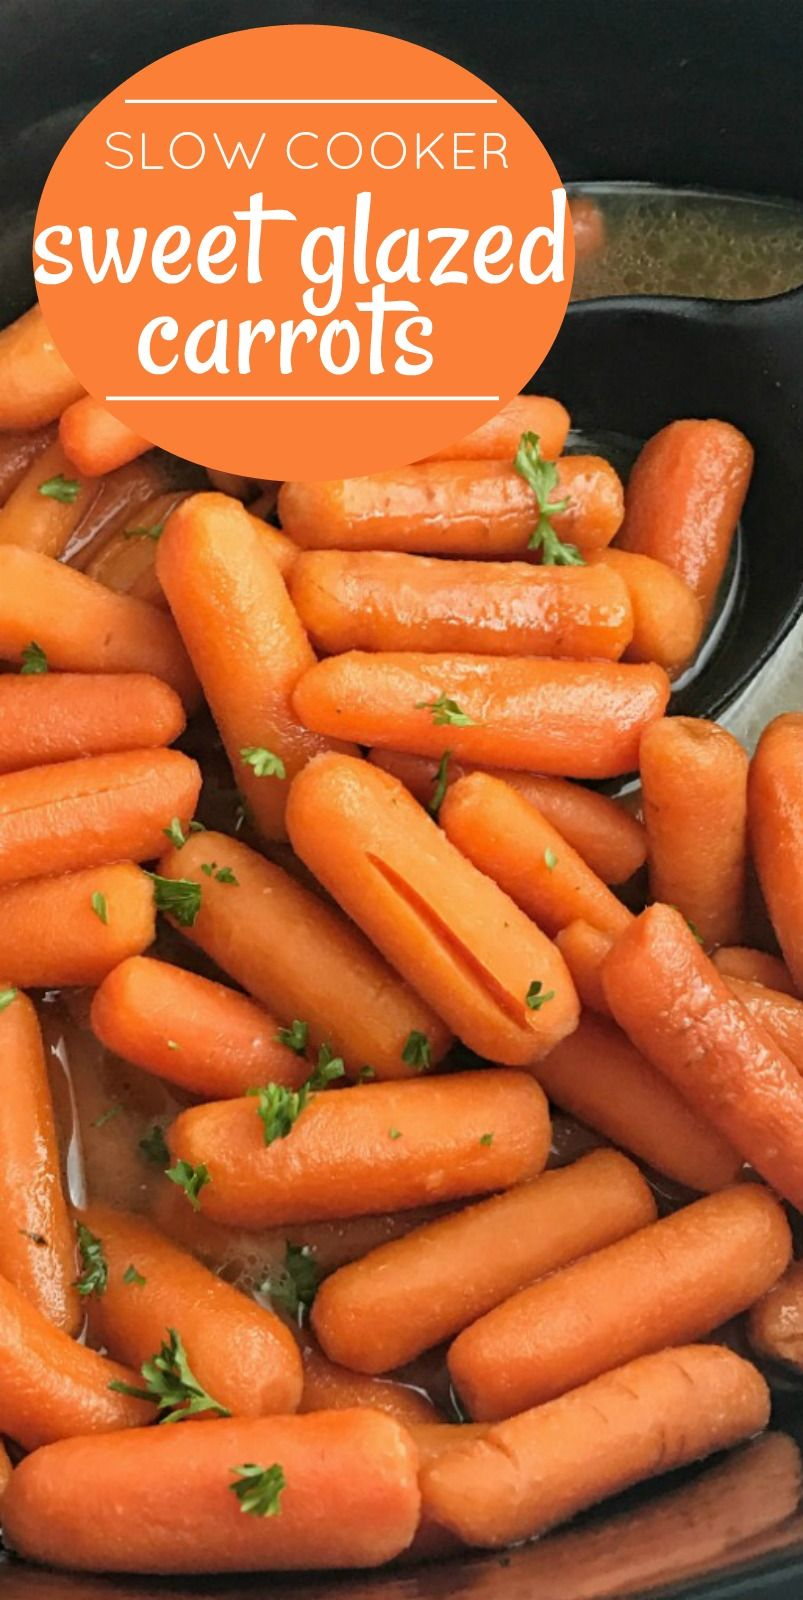 Slow Cooker Sweet Carrots | Side Dish Recipe | Slow Cooker Recipes | Sweet Carrots are made in the slow cooker with only 5 ingredients! Baby carrots simmer in a sweetened chicken broth and butter all day for the best, most tender, and delicious sweet carrots. Perfect side dish for dinner or fancy enough for a Holiday meal. #crockpotrecipes #carrots #carrotrecipes #sidedishrecipes #recipeoftheday #thanksgivingsidedishrecipes #slowcooker #chickensidedishes